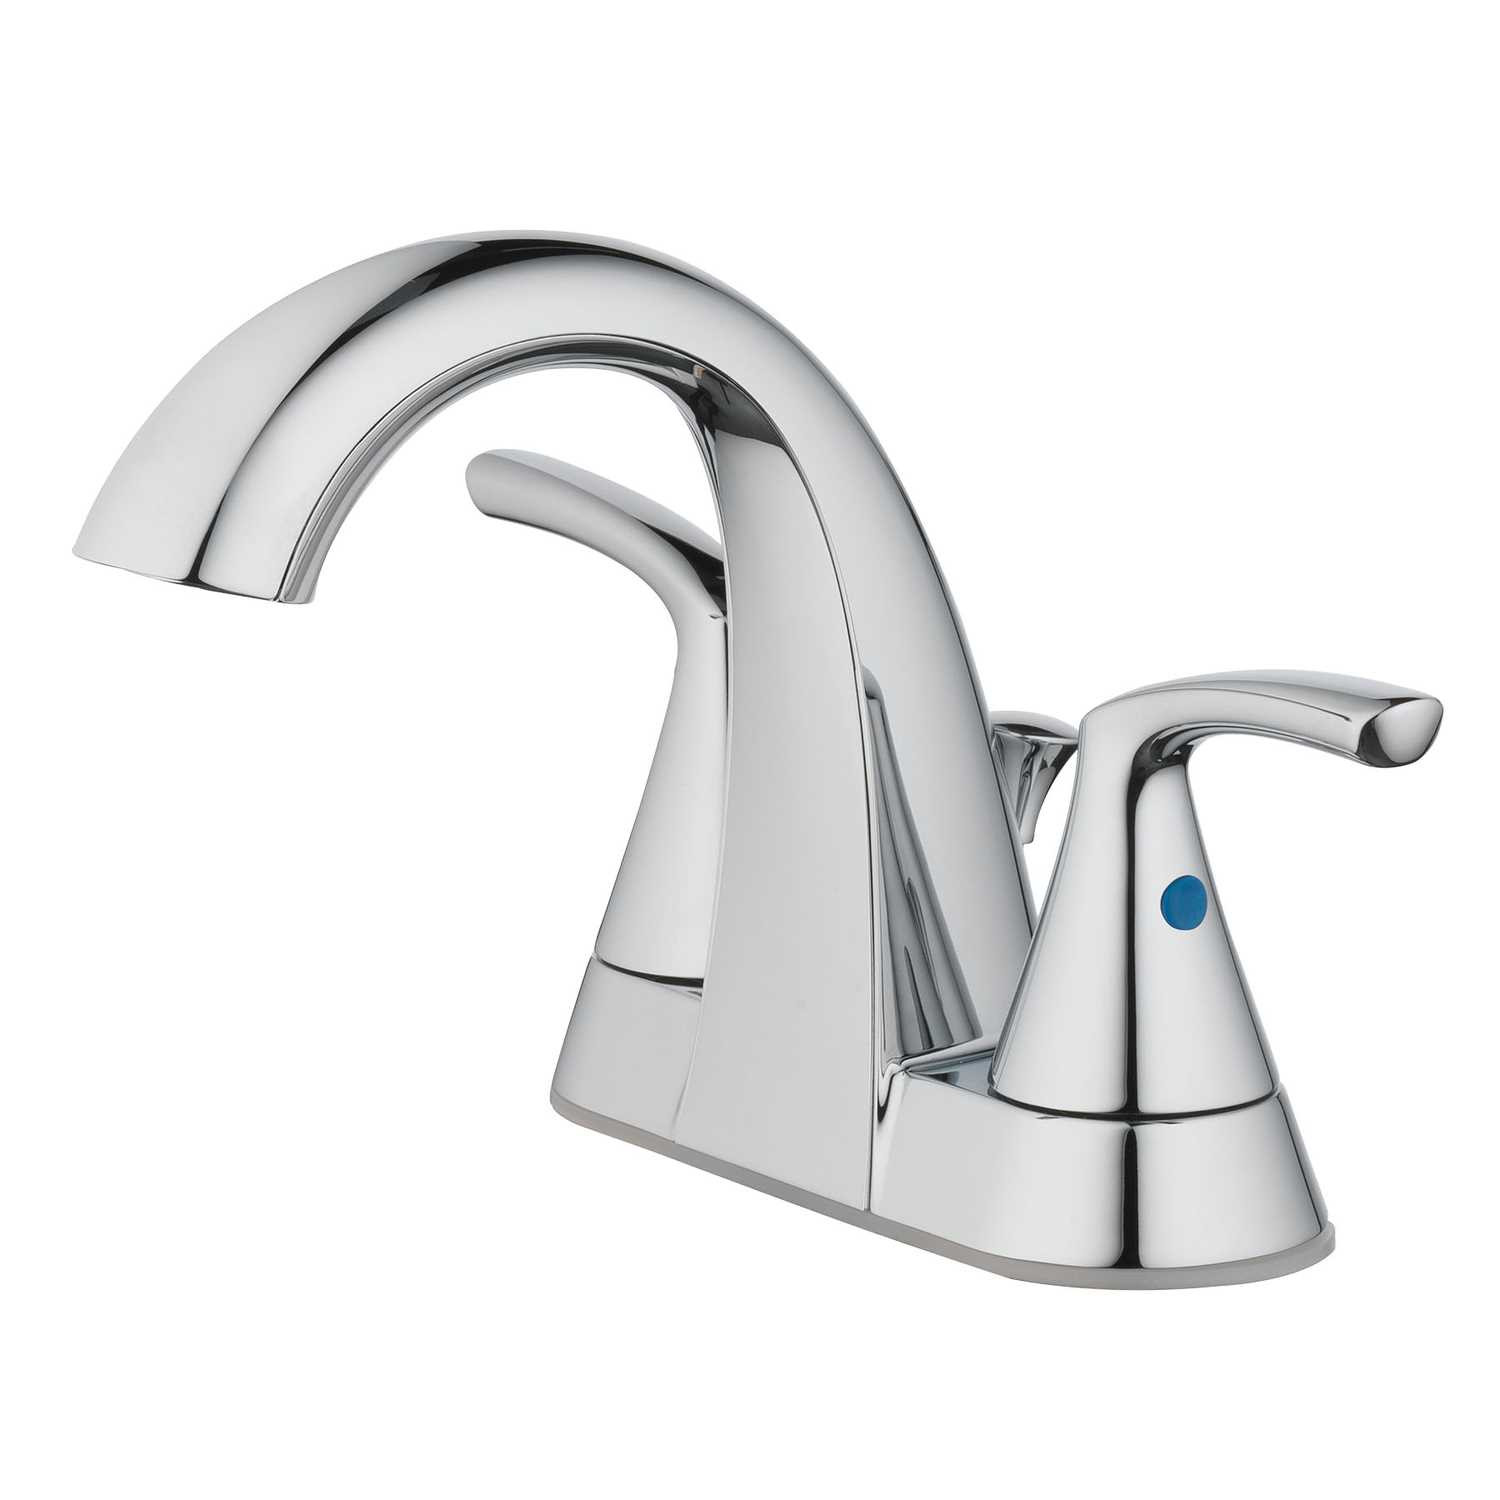 Ace Hardware Bathroom Faucets  OakBrook Pacifica Two Handle Lavatory Pop Up Faucet 4 in